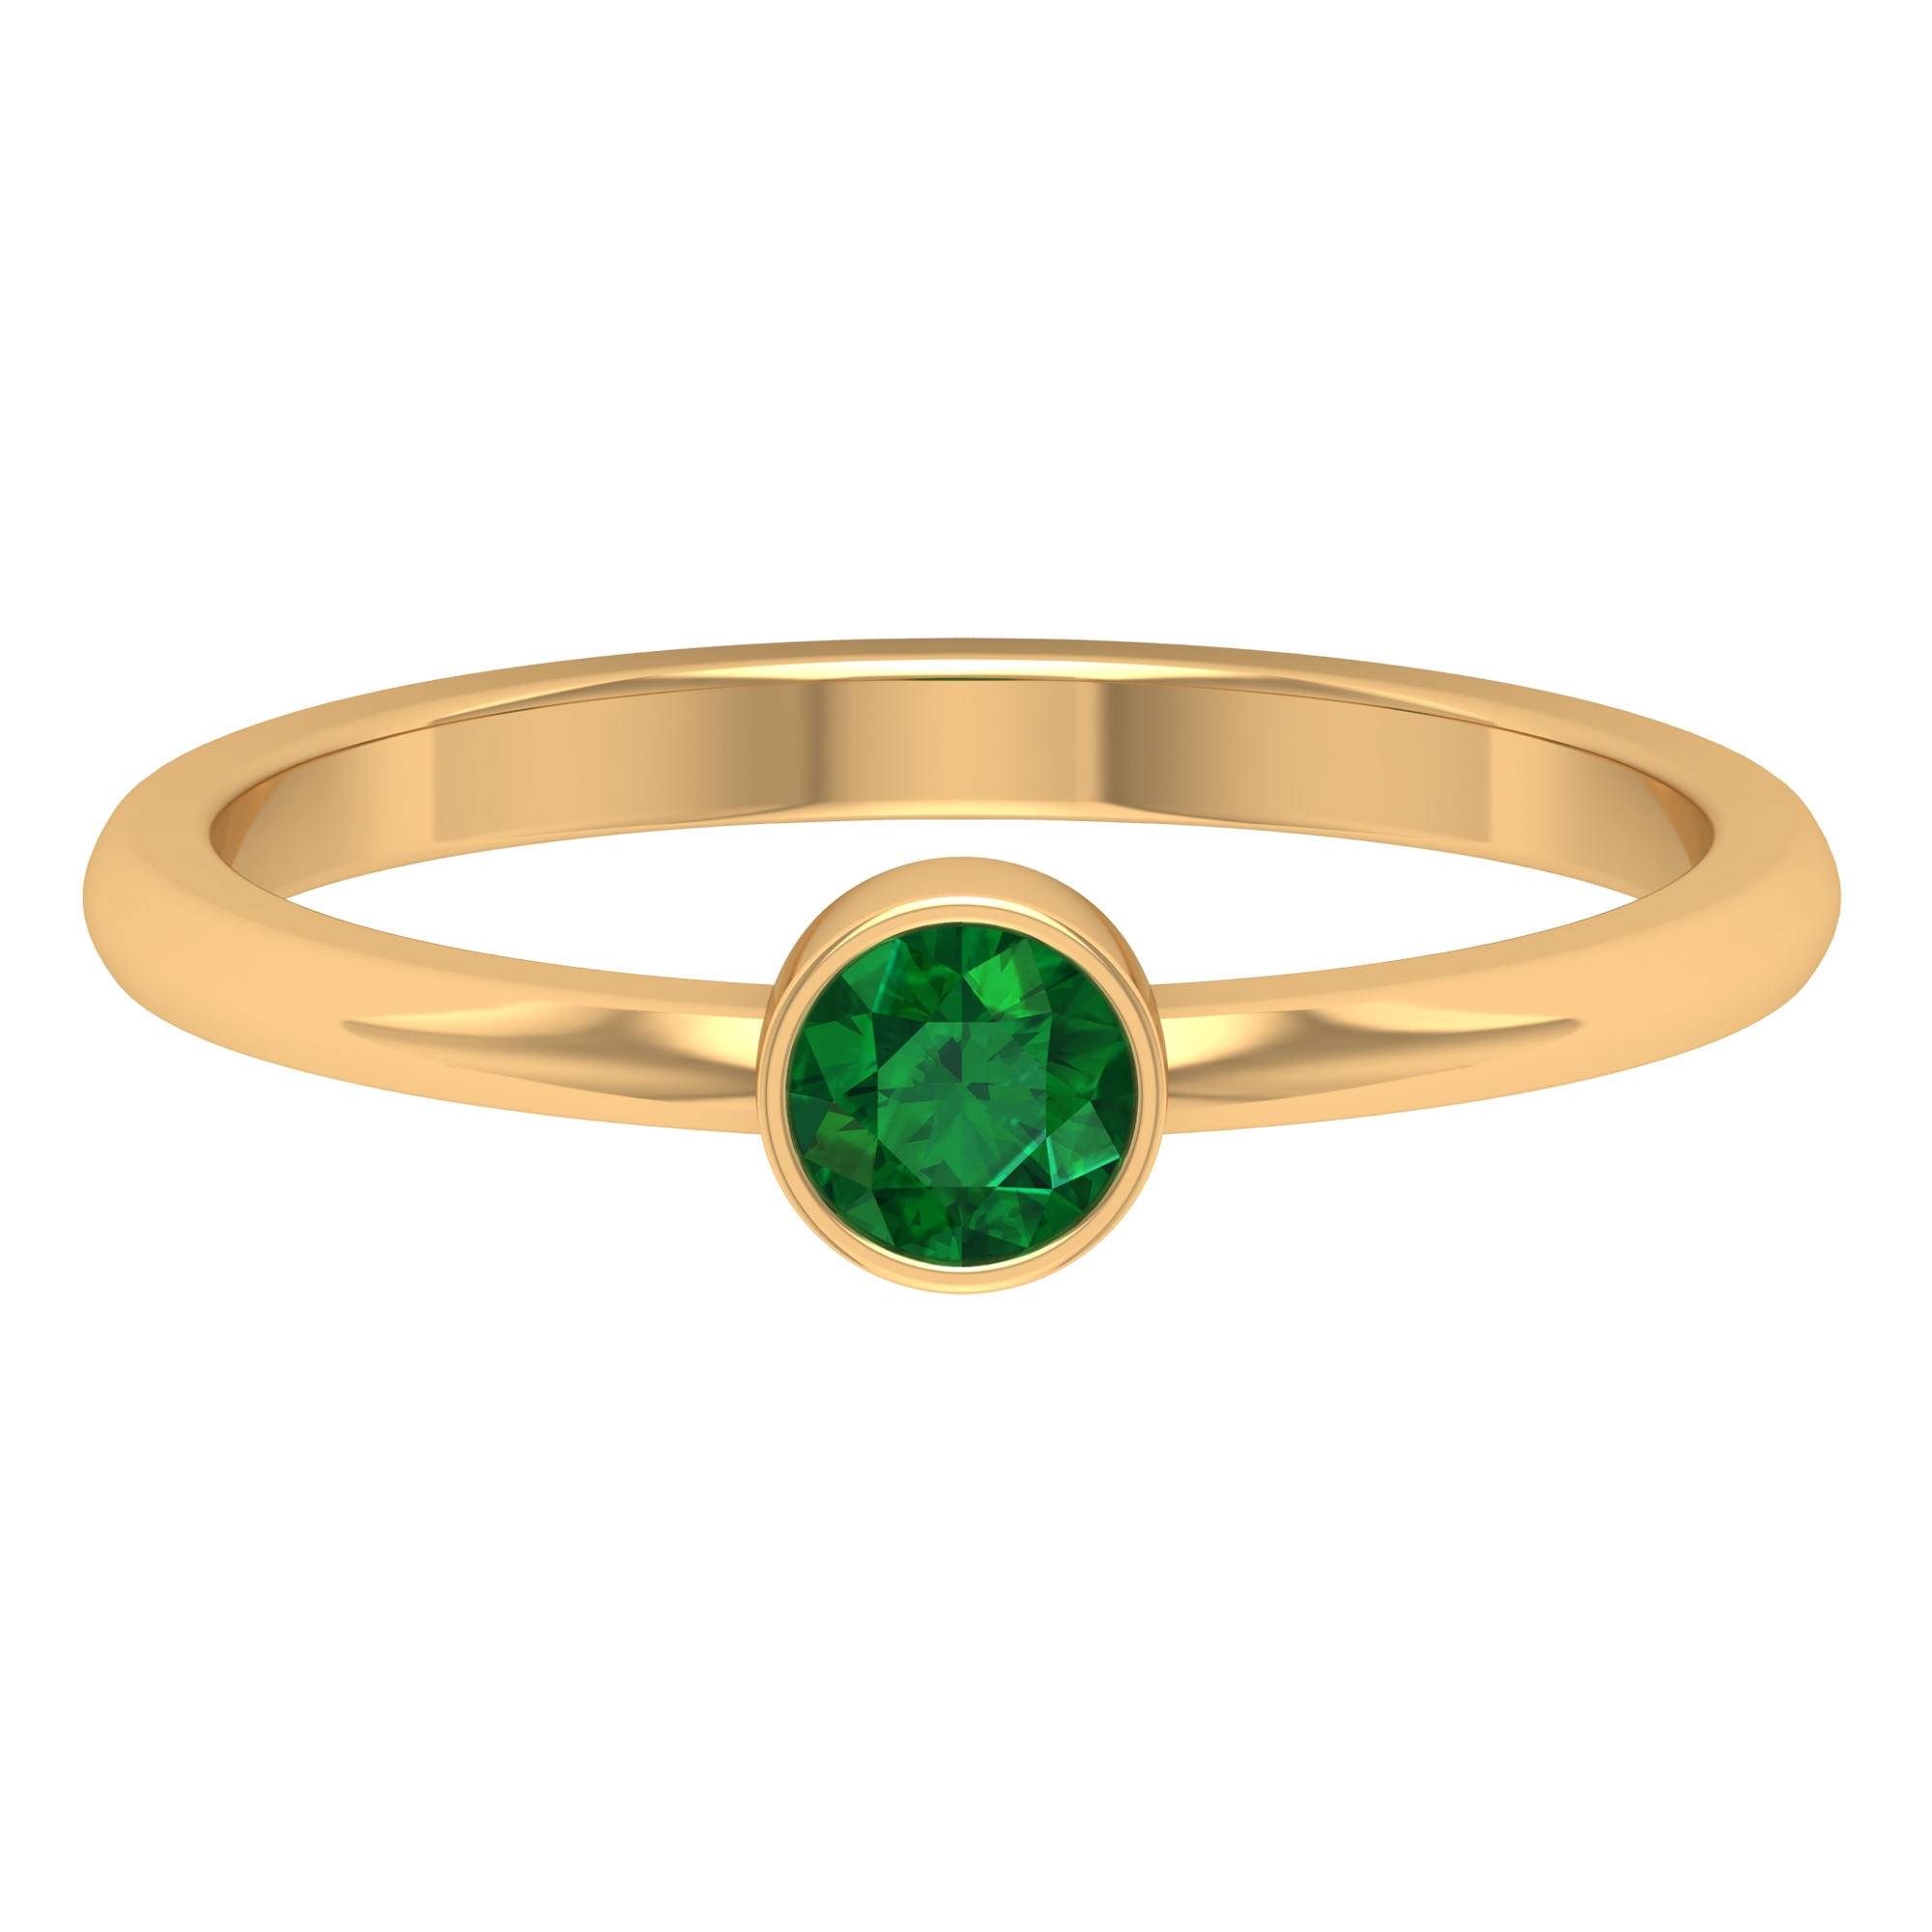 4 MM Round Shape Emerald Solitaire Ring in Bezel Setting